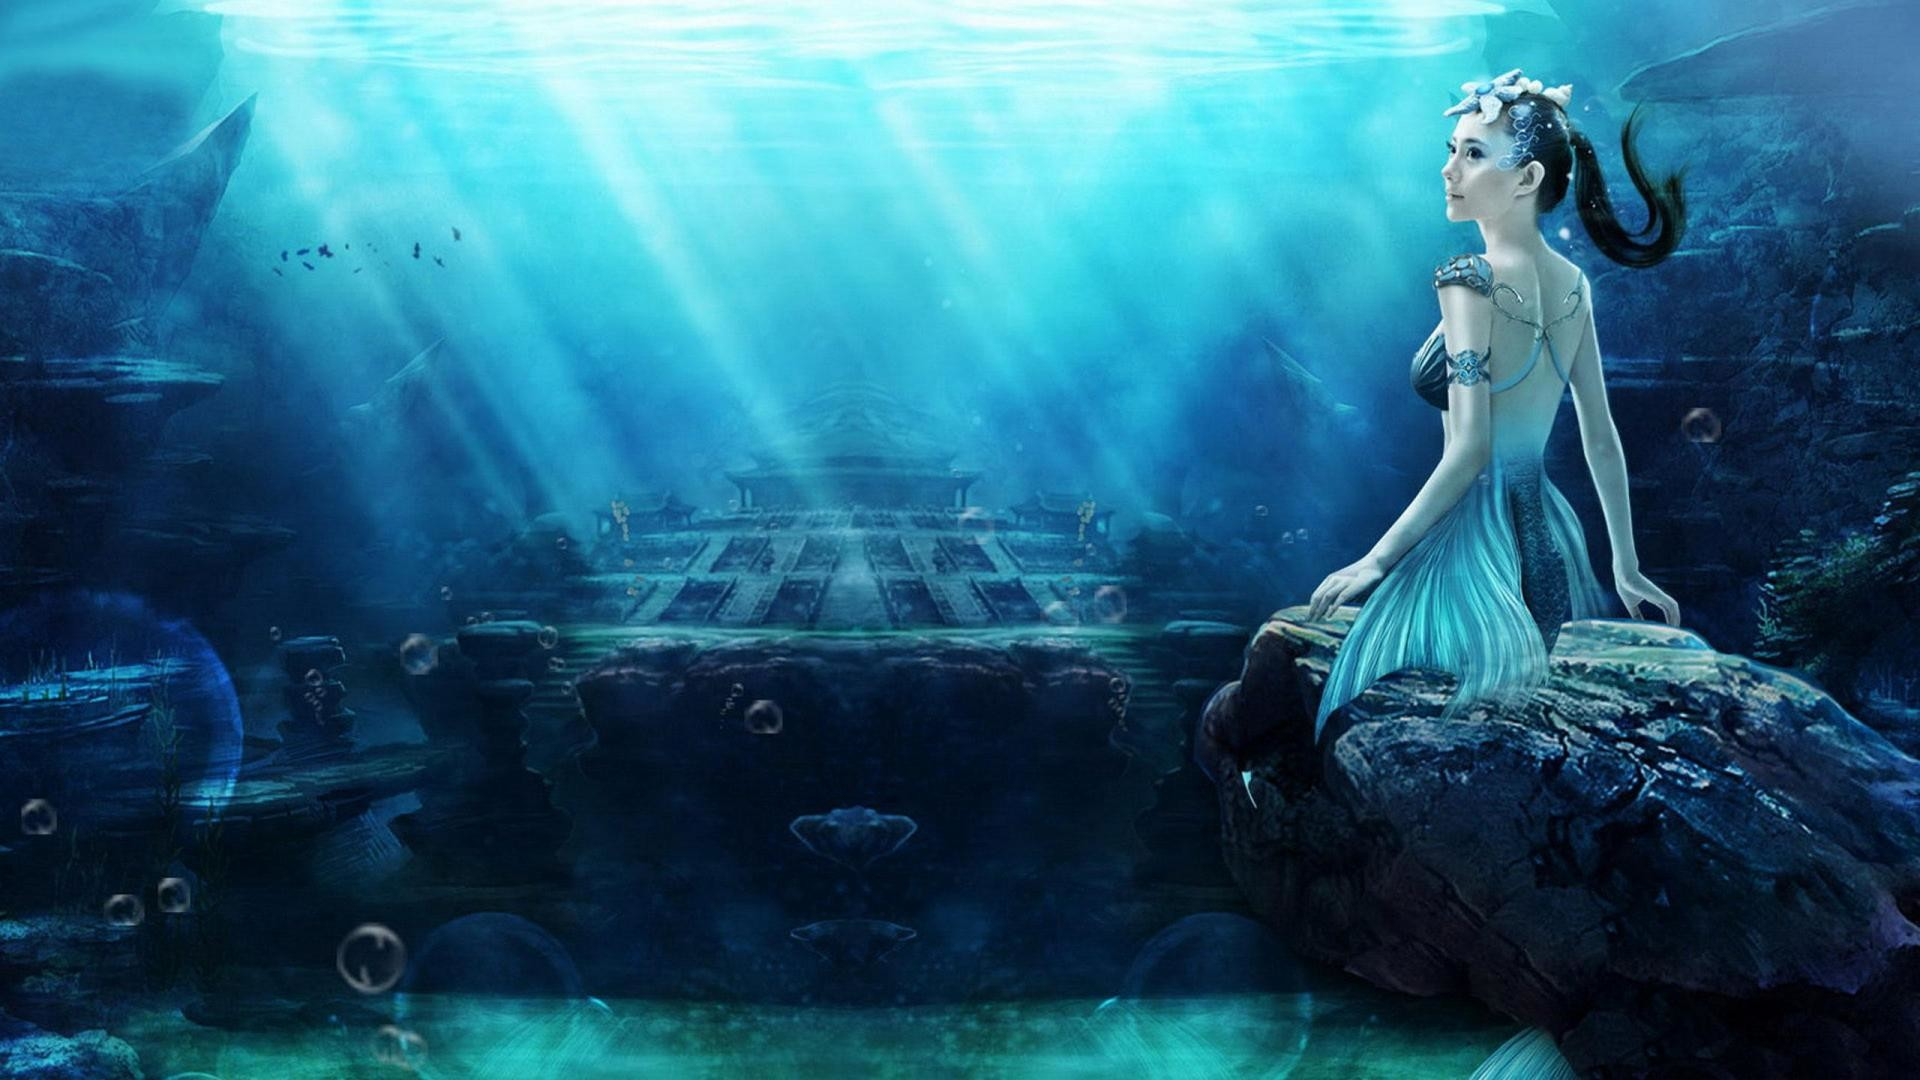 1920x1080 Mermaid Backgrounds. Wallpaper: Mermaid Backgrounds